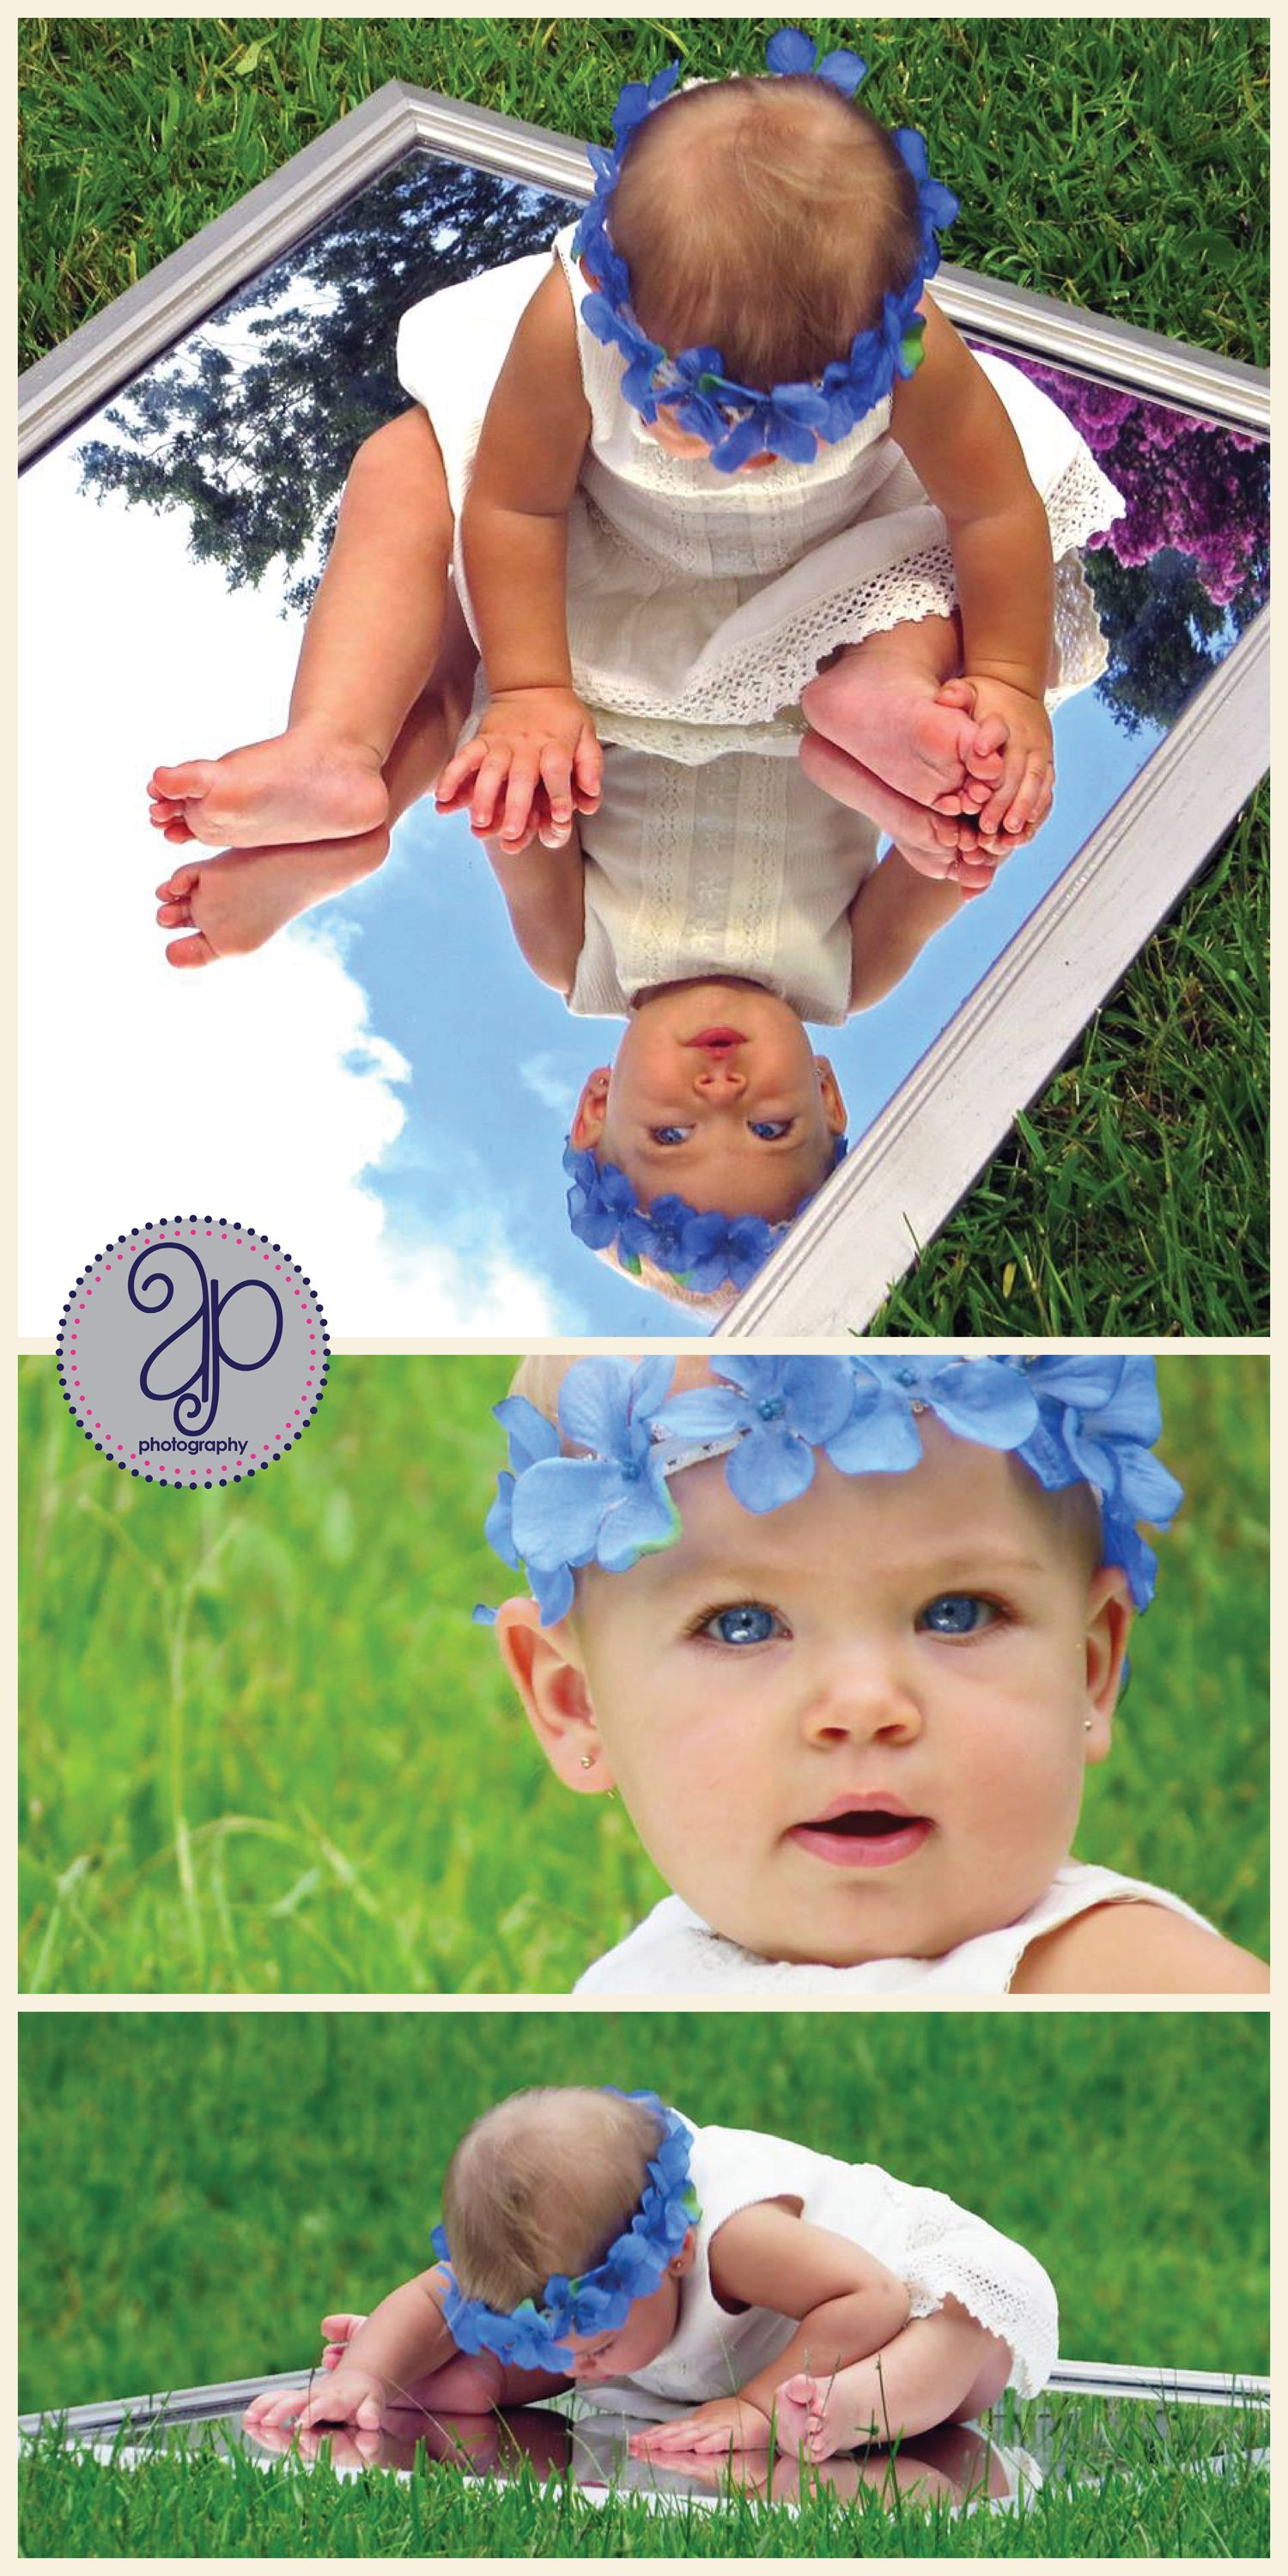 Baby Mirror Photography Idea Absolutely Love This Idea Must